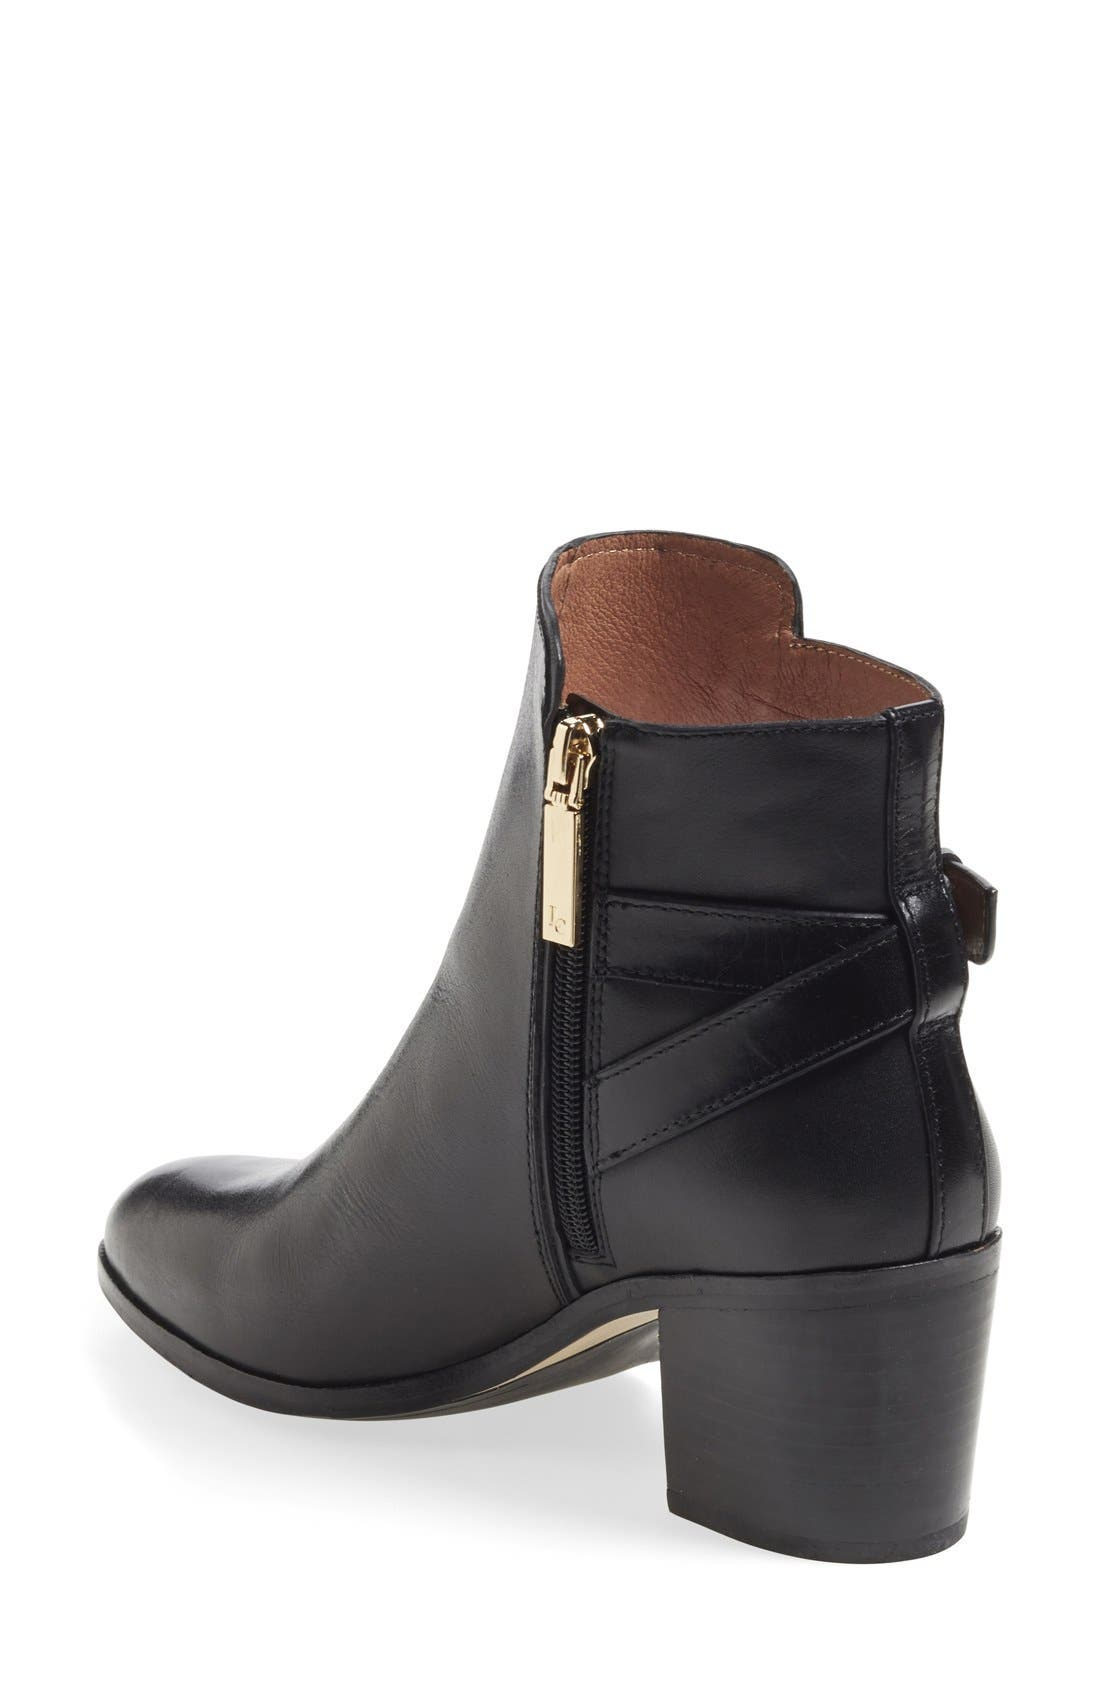 'Zalia' Ankle Bootie,                             Alternate thumbnail 2, color,                             001